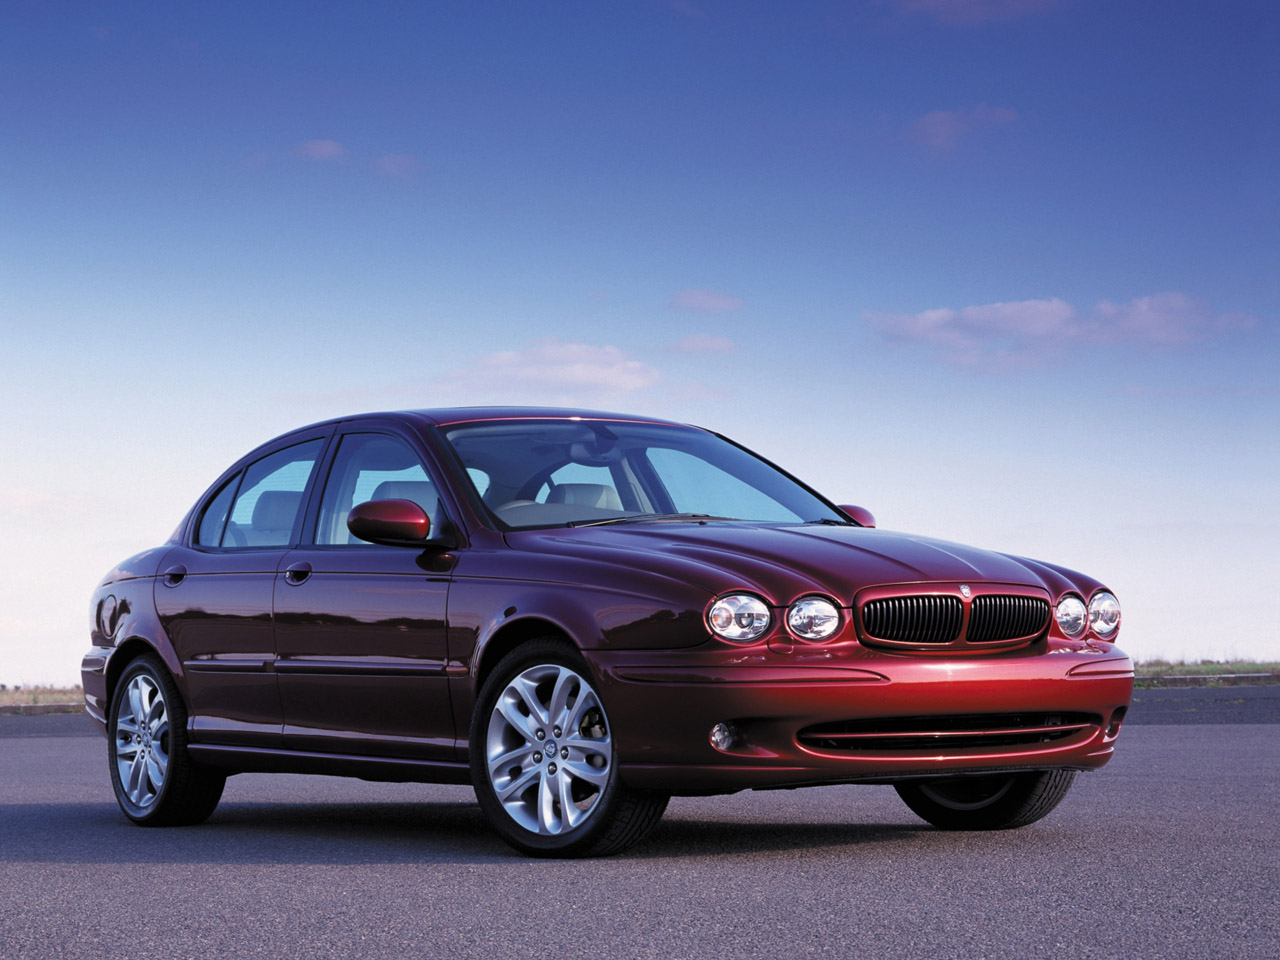 jaguar x-type 2.0 v6 #4